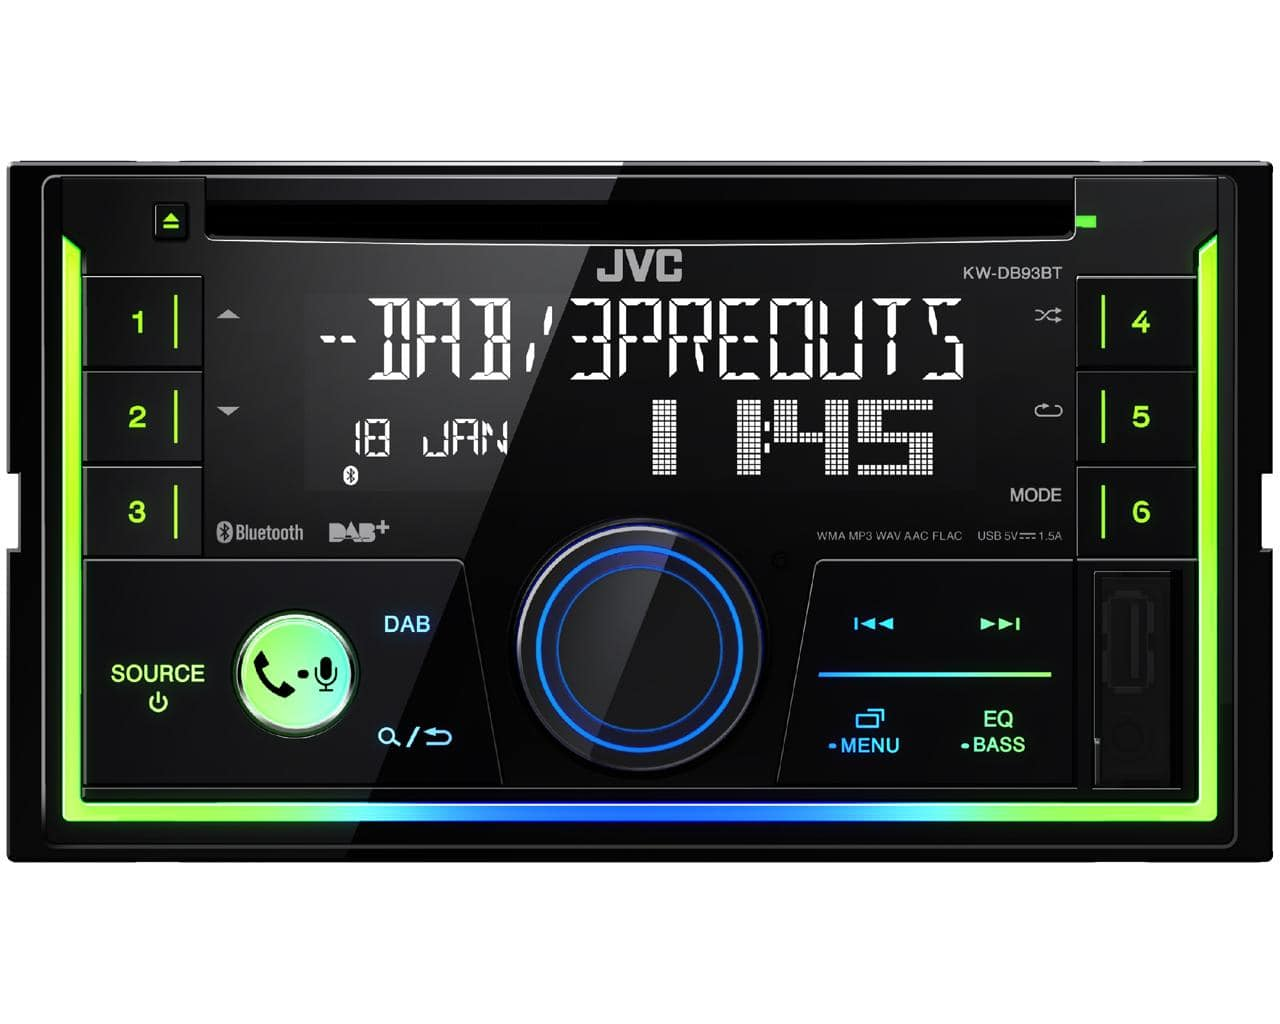 jvc kw db93bt doppel din autoradio von expert technomarkt. Black Bedroom Furniture Sets. Home Design Ideas